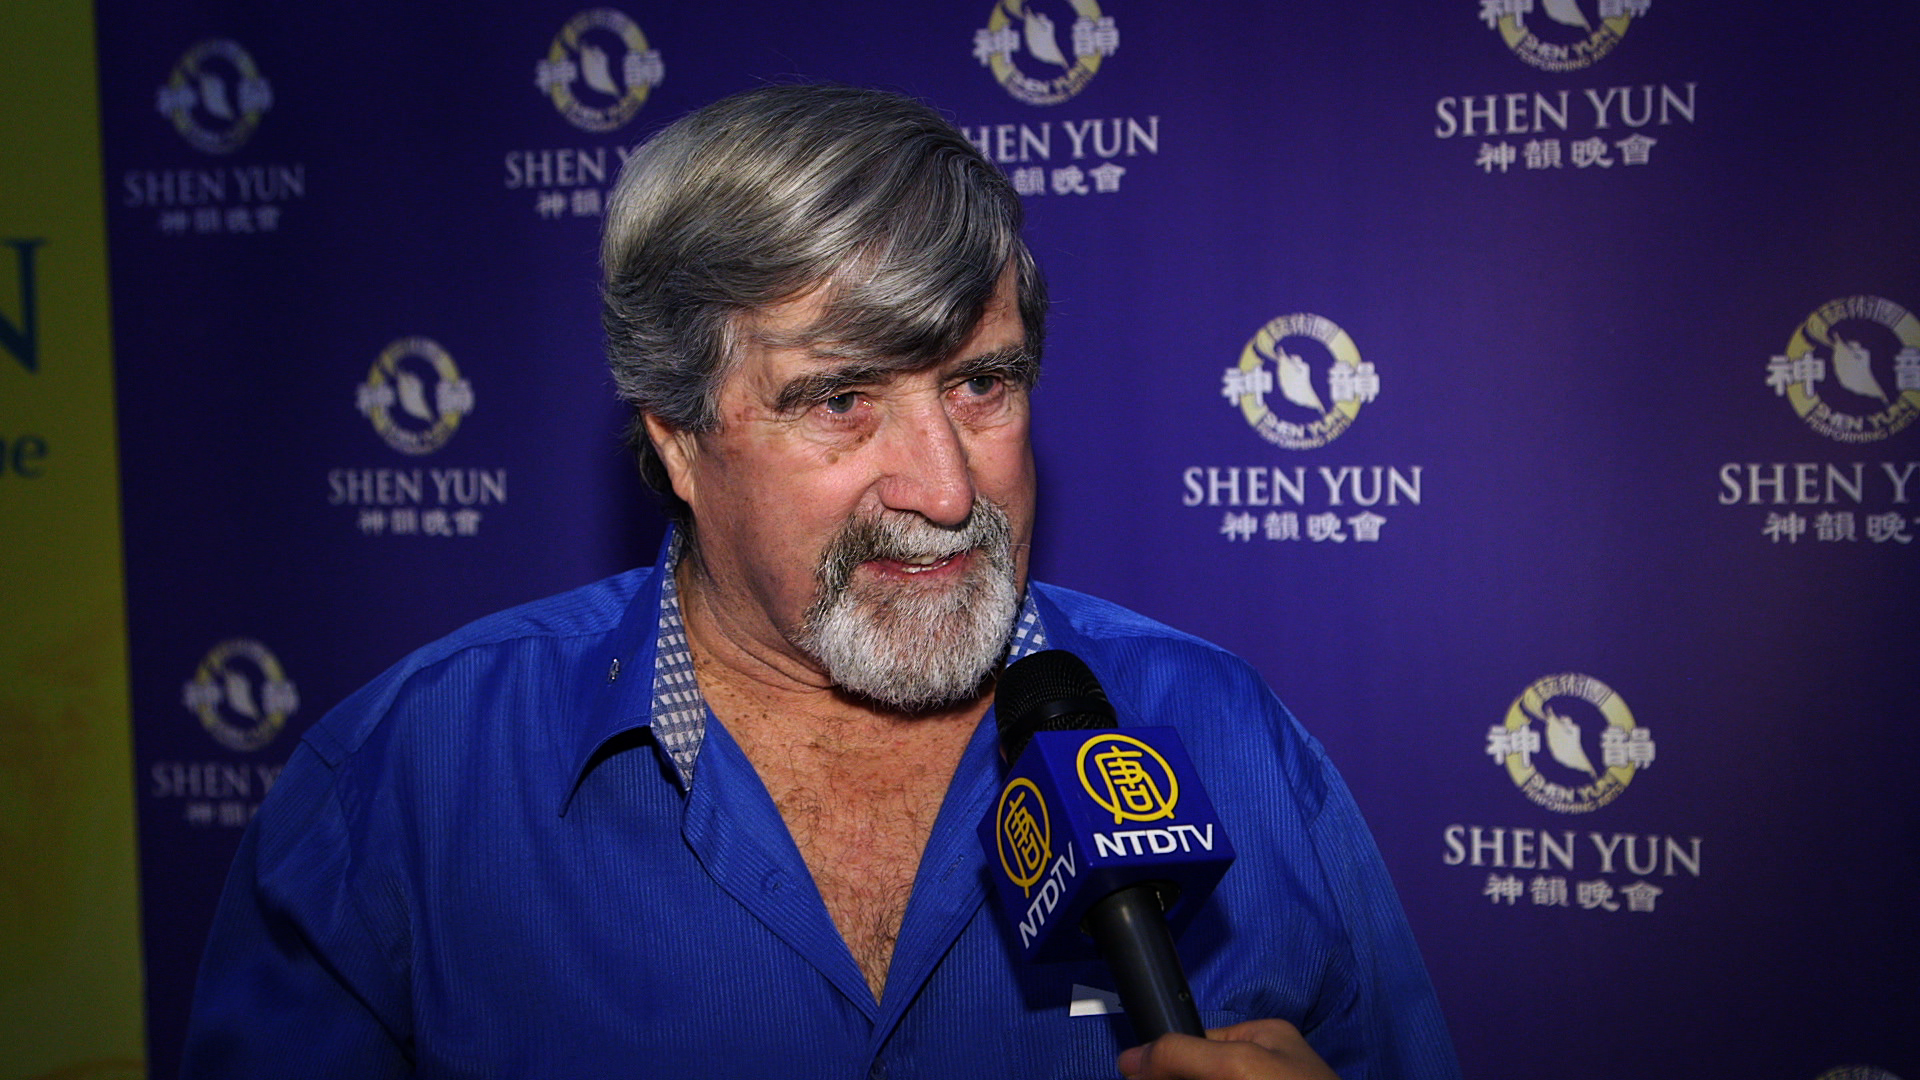 Shen Yun a Journey for the Soul